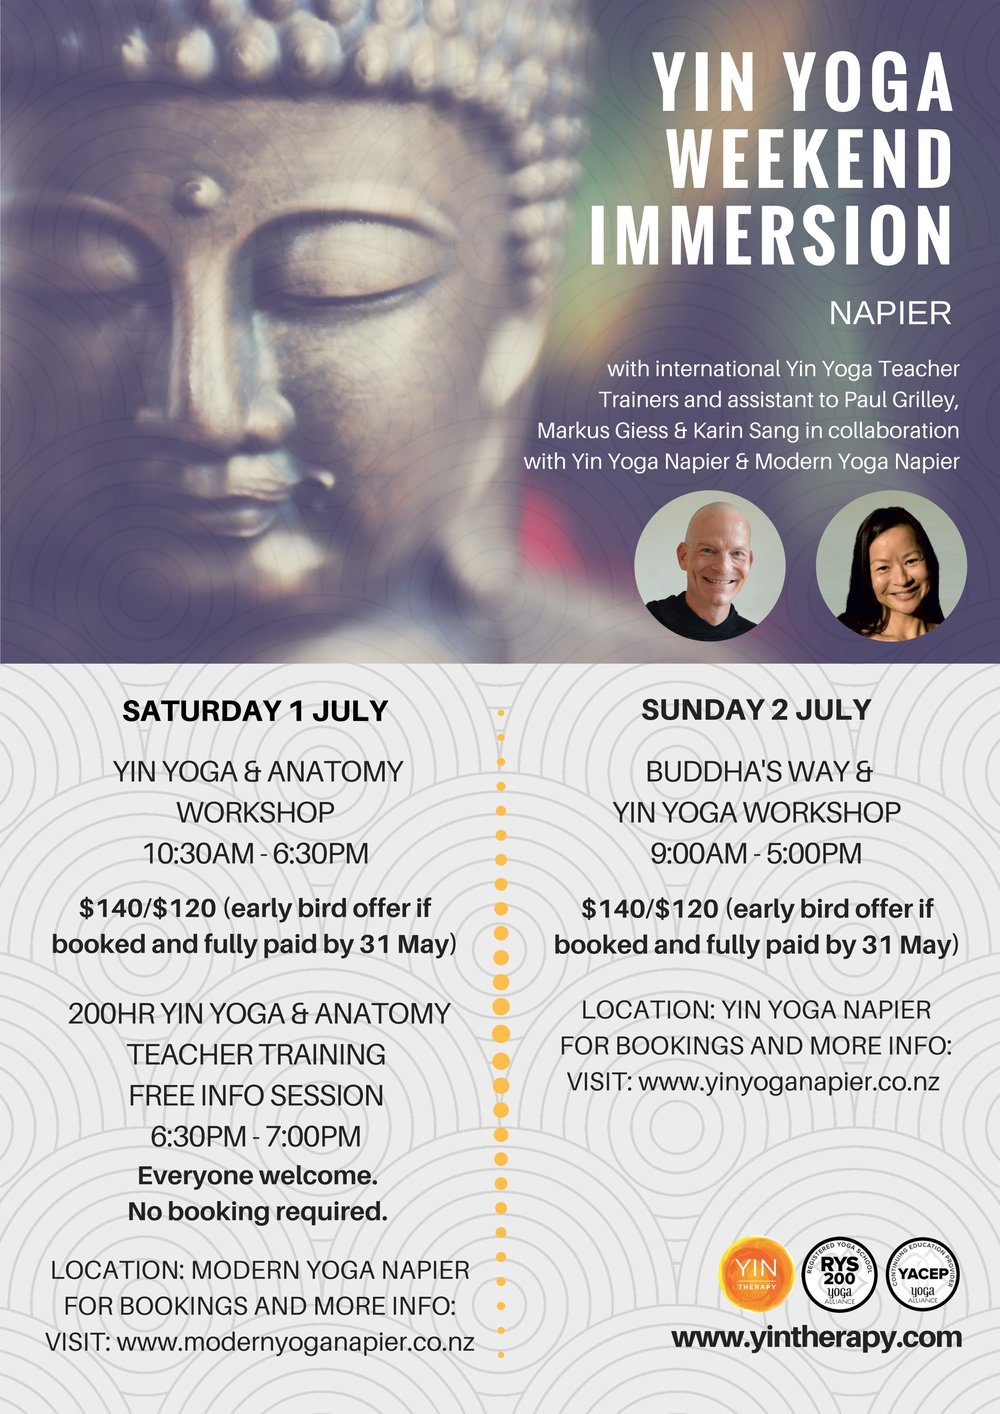 Yin Yoga Weekend Immersion